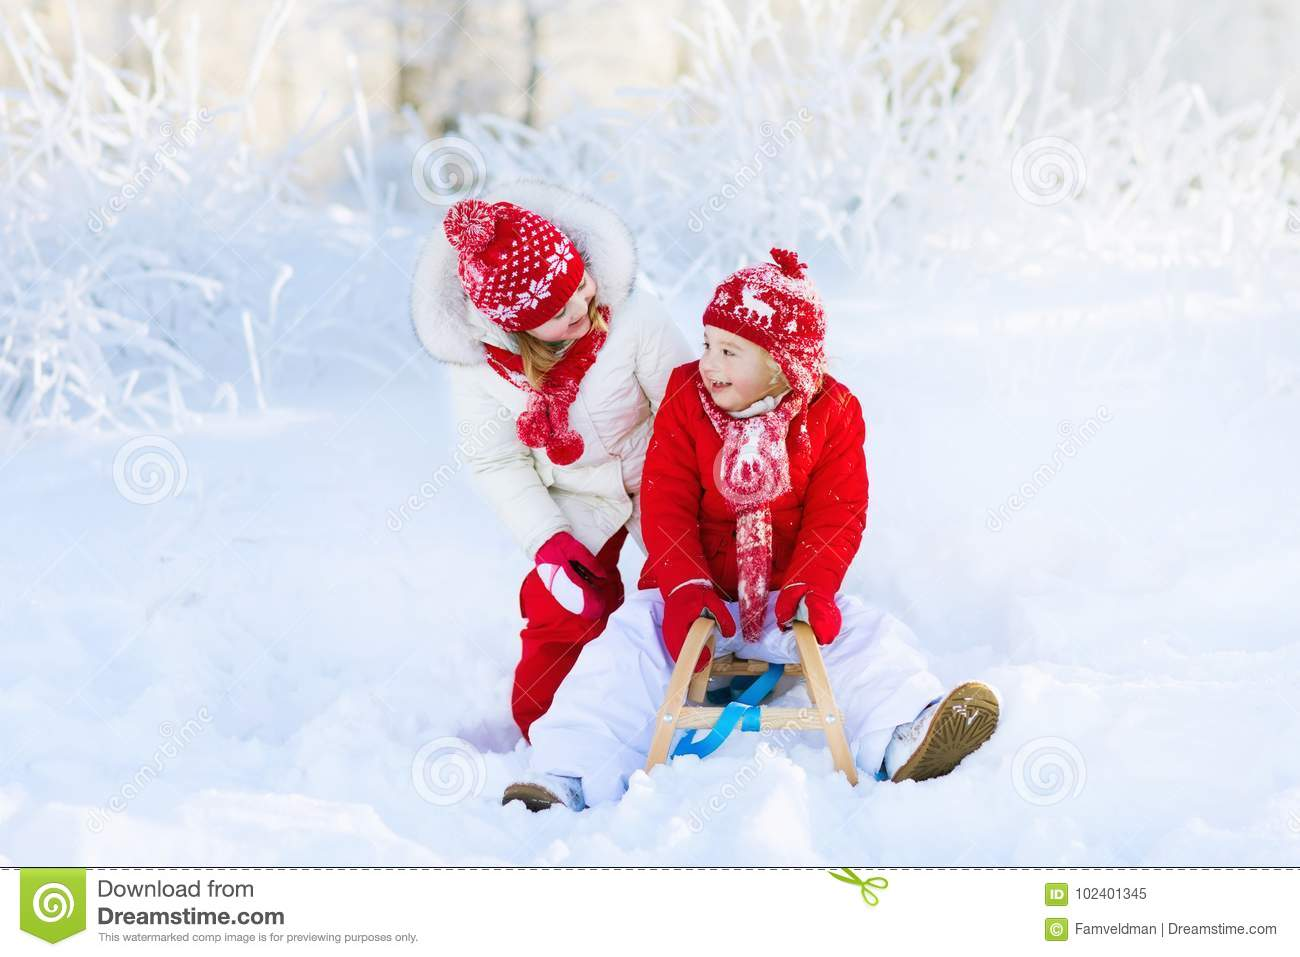 Kids Play In Snow Winter Sleigh Ride For Children Stock Image